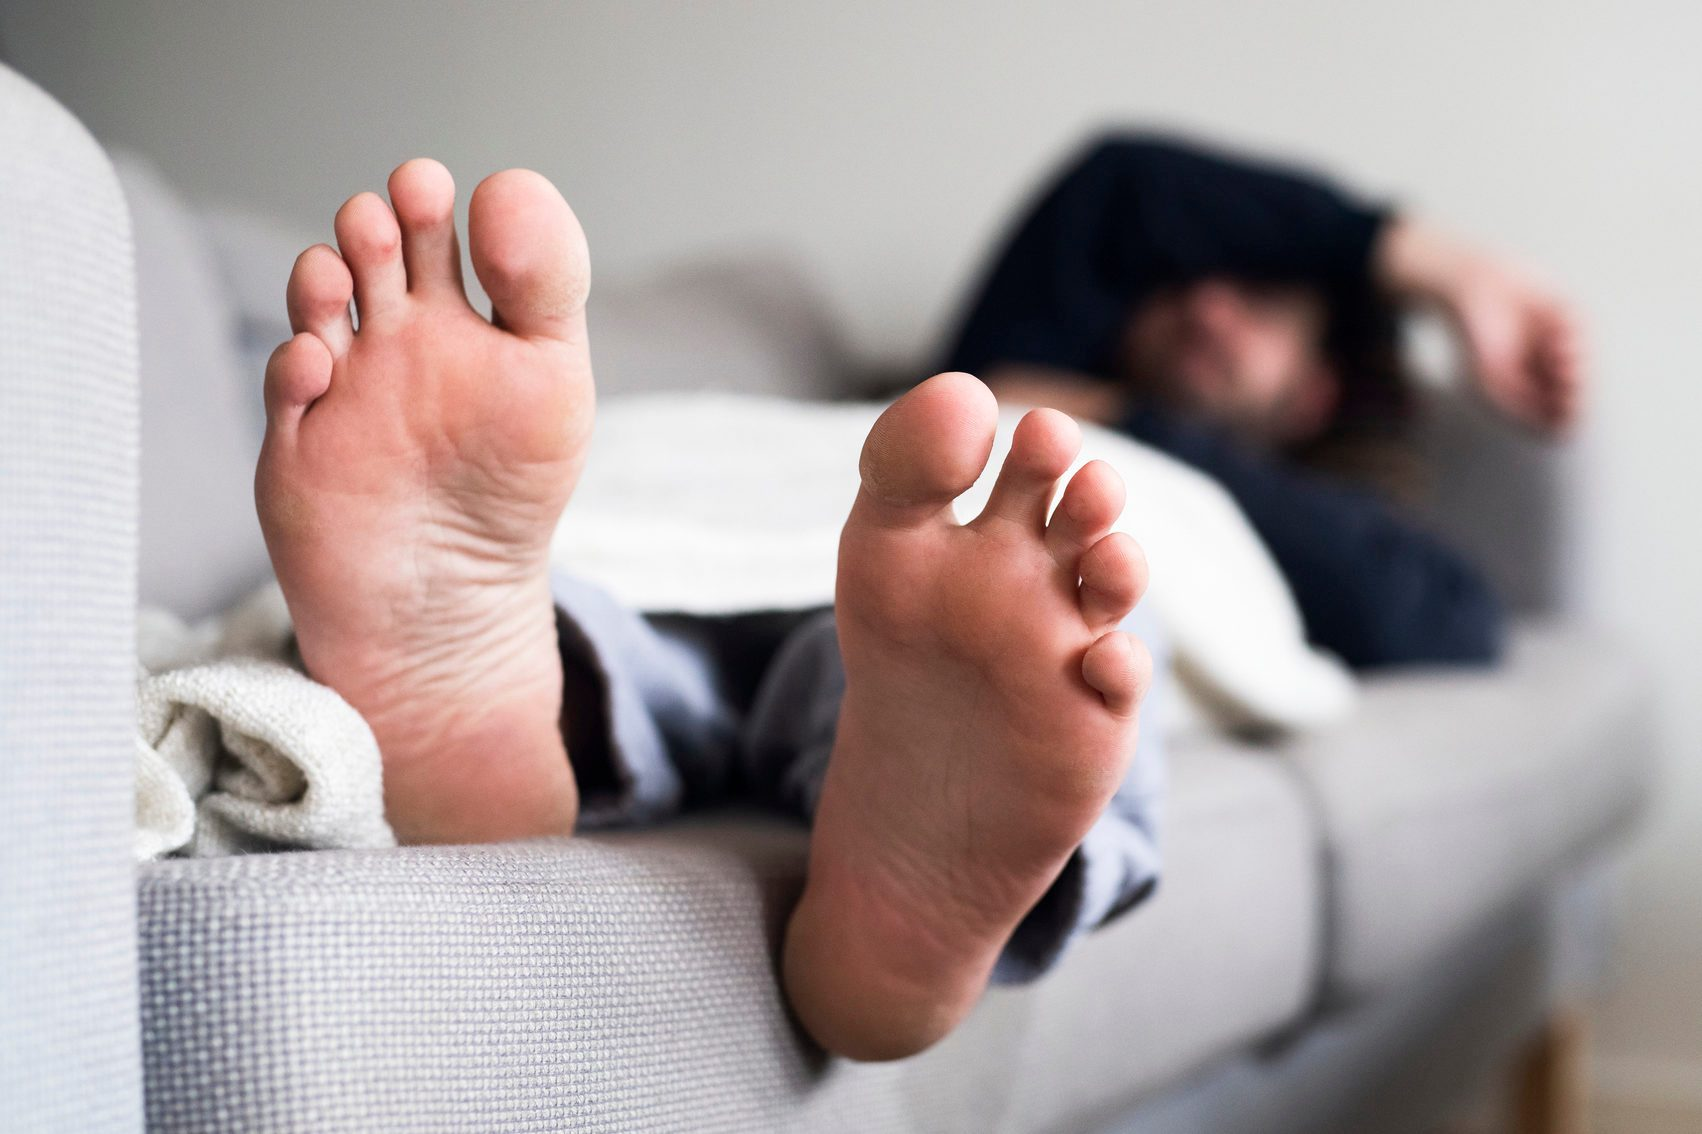 Man sleeping on sofa, close-up of feet